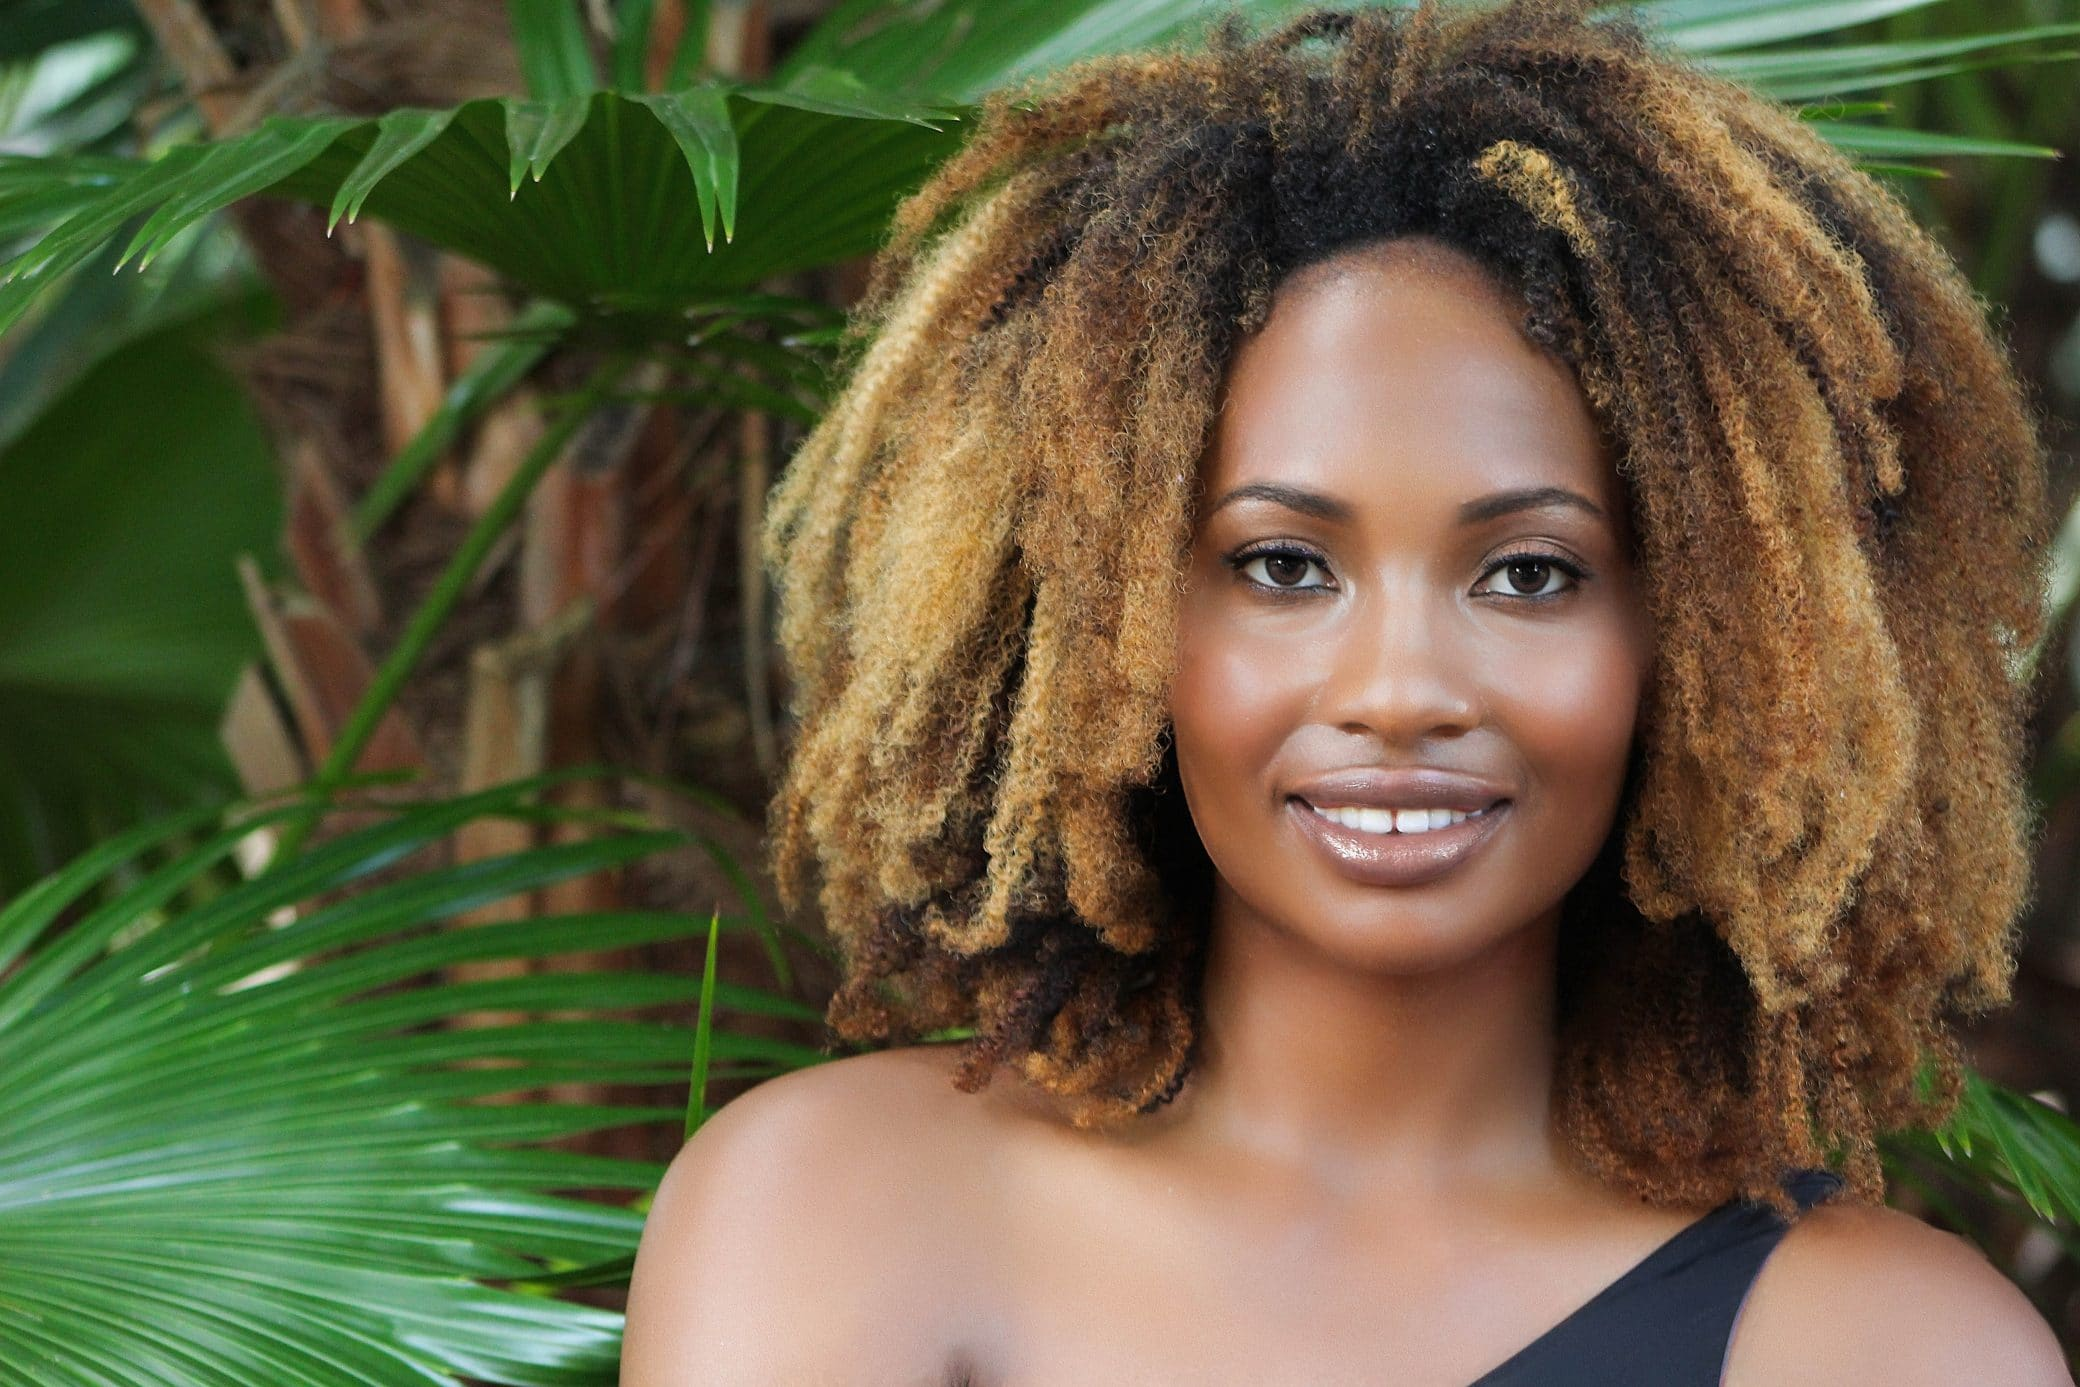 Beautiful black woman portrait smiling posing with palm trees